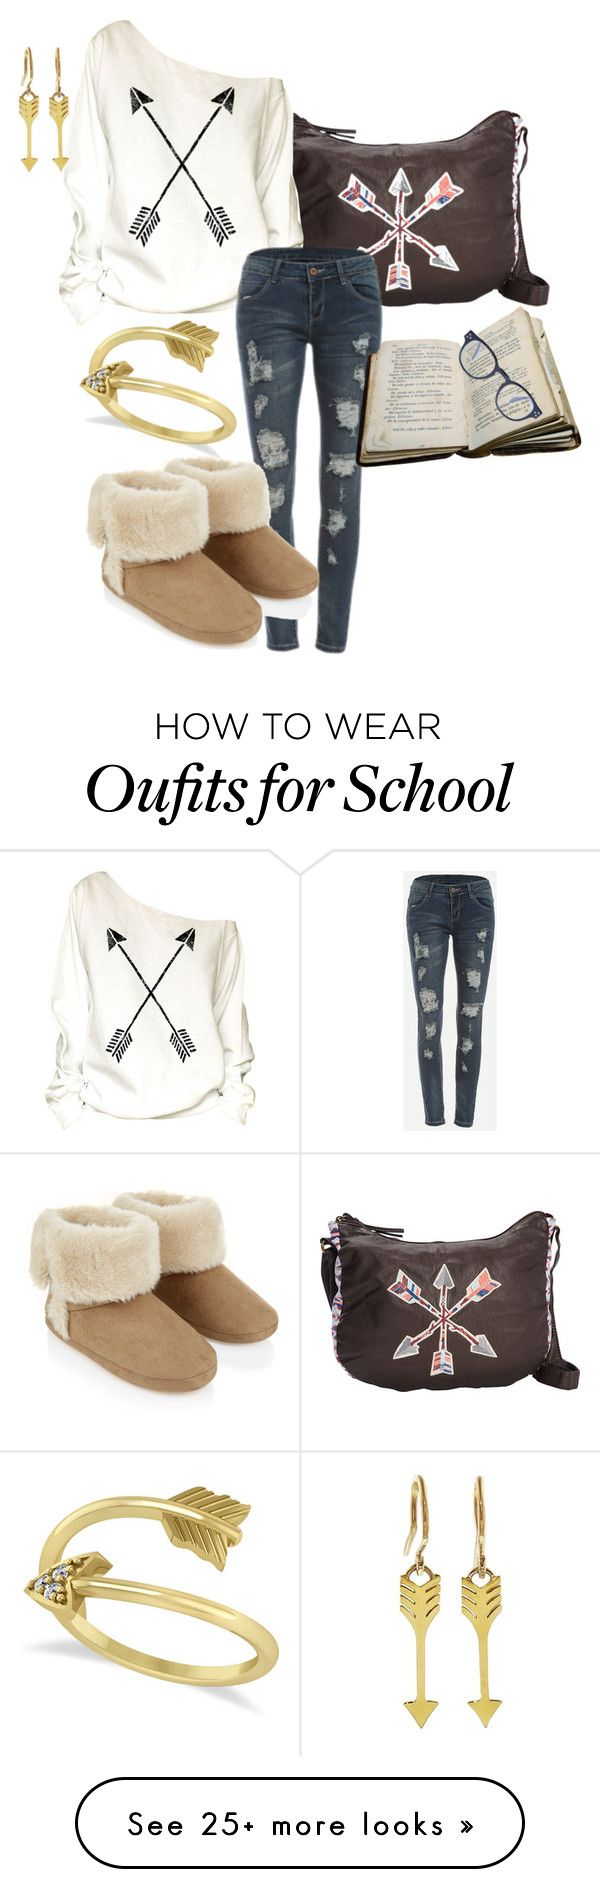 """""""BACK TO SCHOOL"""" by deborah-calton on Polyvore featuring T-shirt & Jeans, Allurez, Jennifer Meyer Jewelry and Accessorize"""